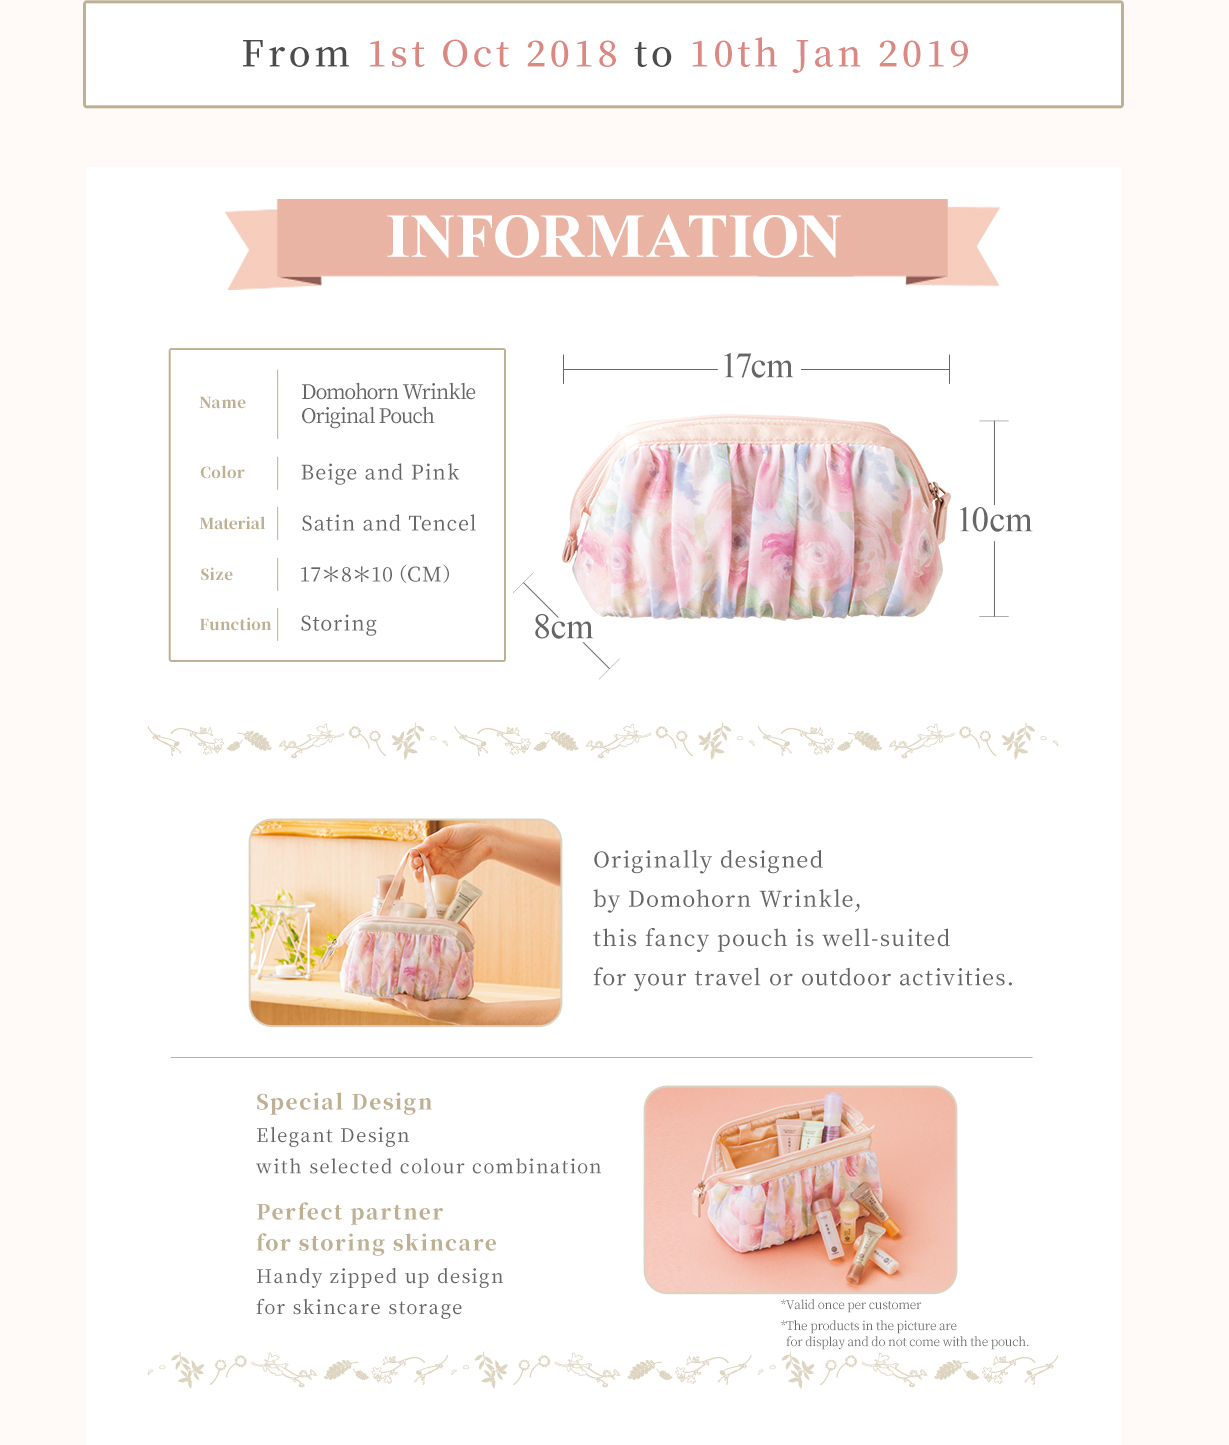 From 1st Oct 2018 to  10th Jan 2019 INFORMATION Name:Domohorn Wrinkle Original Pouch Colour:Beige and Pink Material:Chiffon and Silk Size:17*8*10(CM)Function:Storing Originally designed by Domohorn Wrinkle, this fancy pouch is well-suited for your travel or outdoor activities. Special Design Elegant Design with selected colour combination Perfect partner for storing skincare Handy zipped up design for skincare storage *Valid once per customer *The products in the picture are for display and do not come with the pouch.